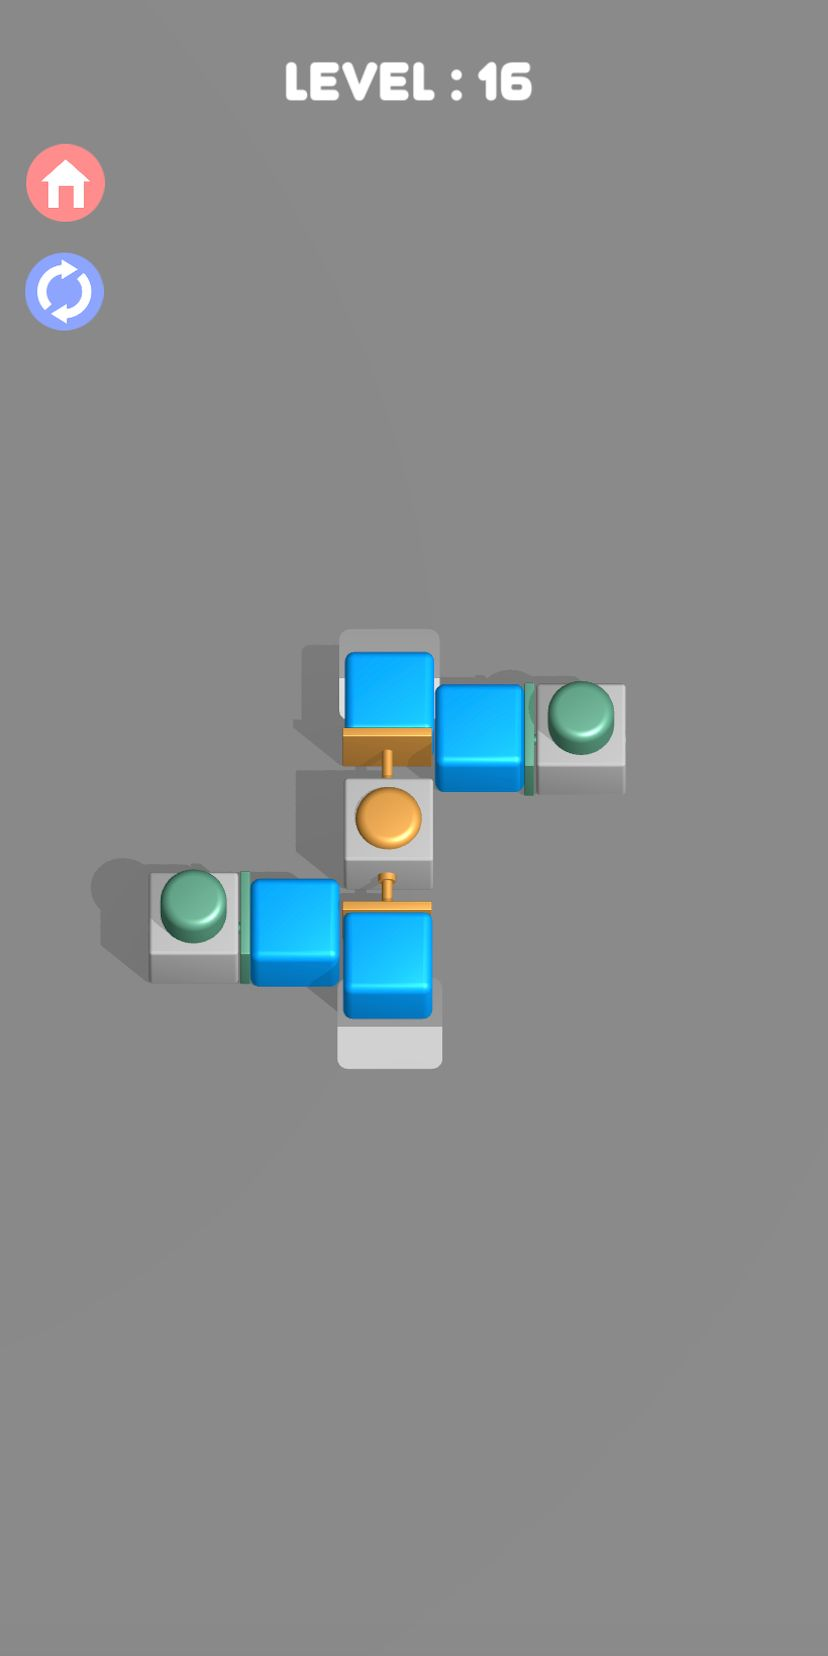 Push them all 3D - Smart block puzzle game para Android